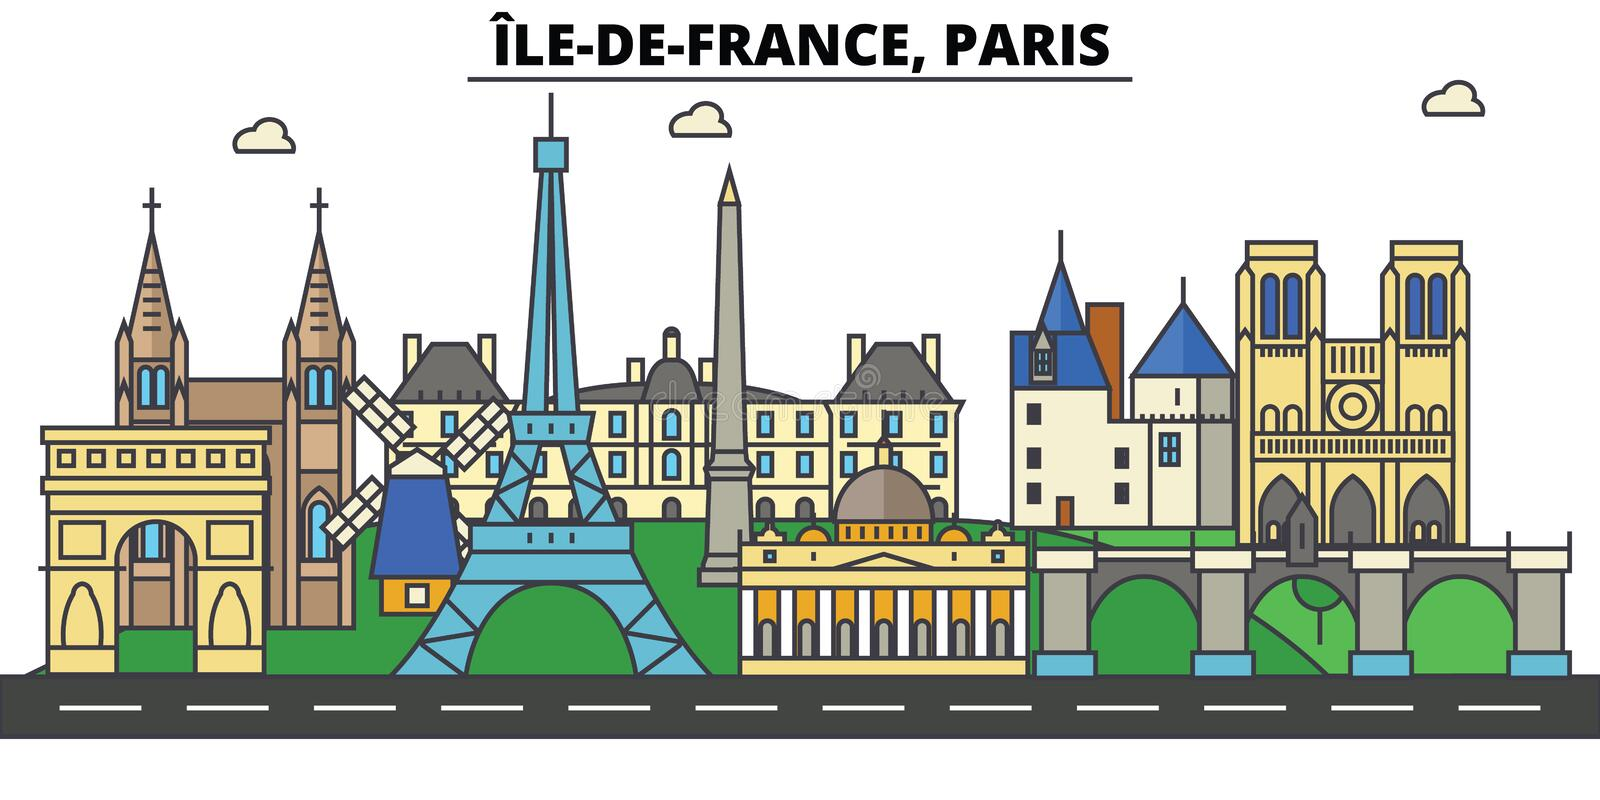 France, Paris, Ile De France . City skyline architecture royalty free illustration